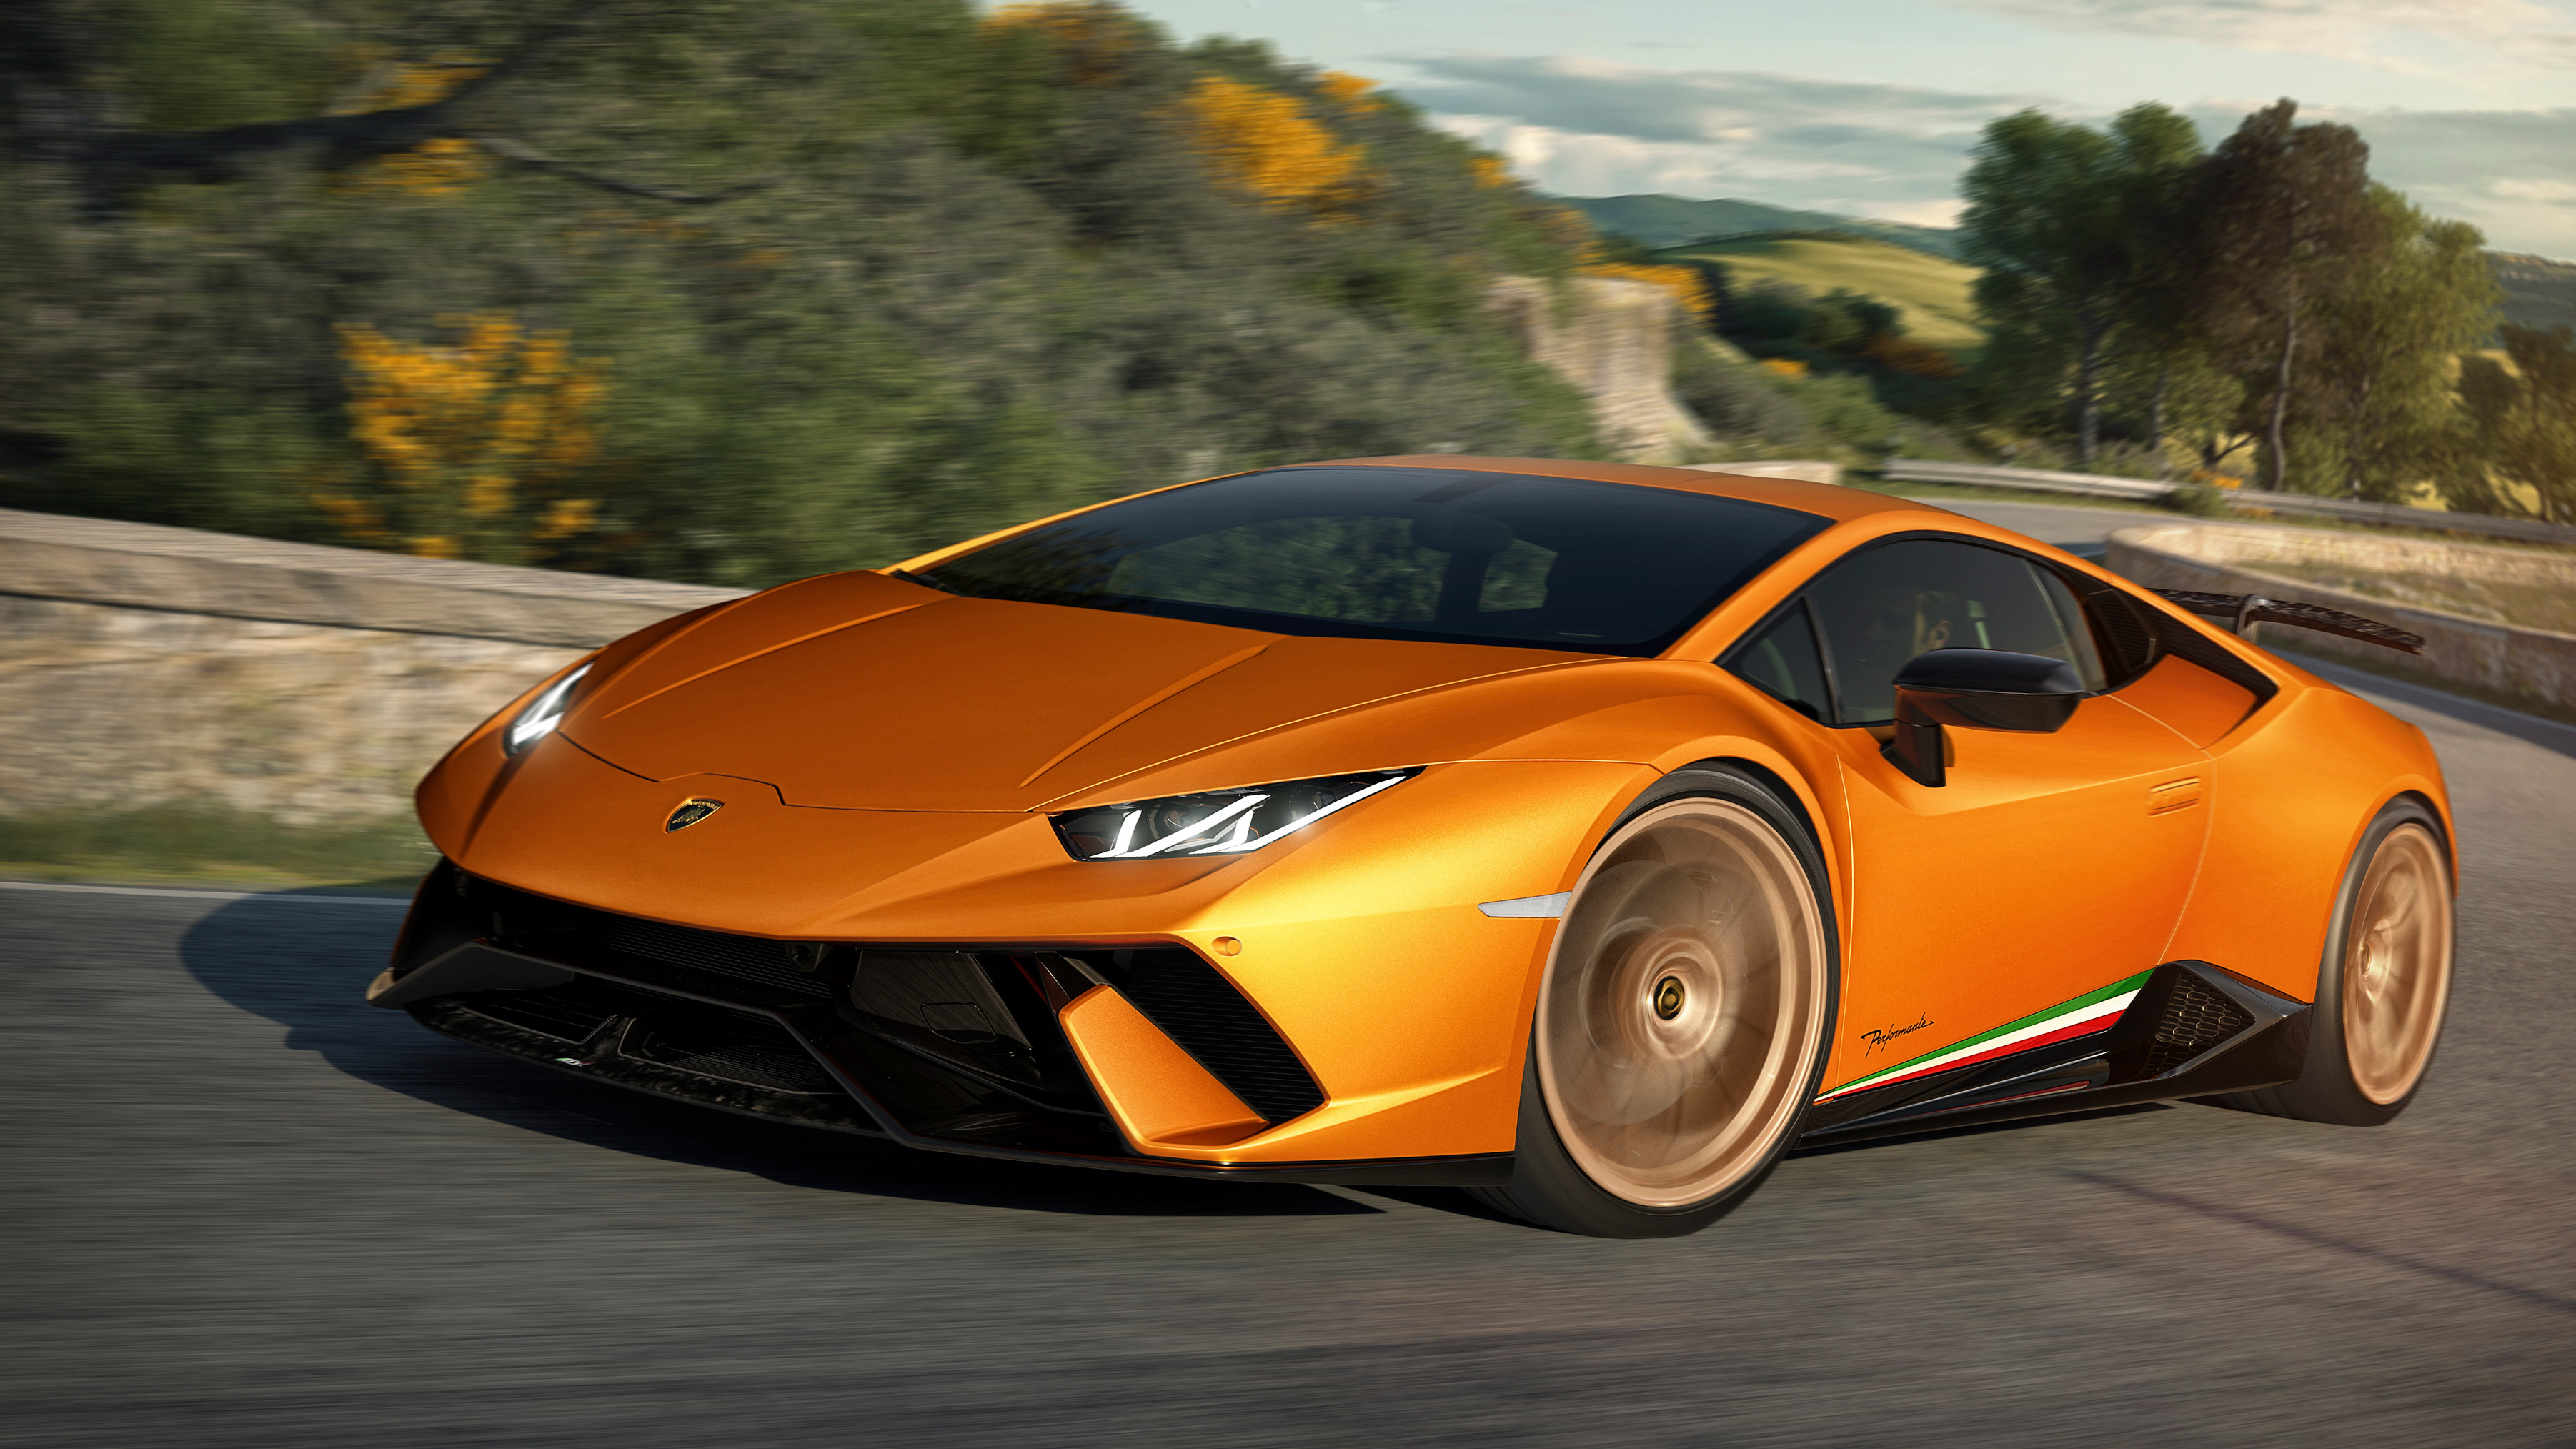 2017 Lamborghini Huracan Performante 4 Wallpaper Hd Car Wallpapers Id 7484